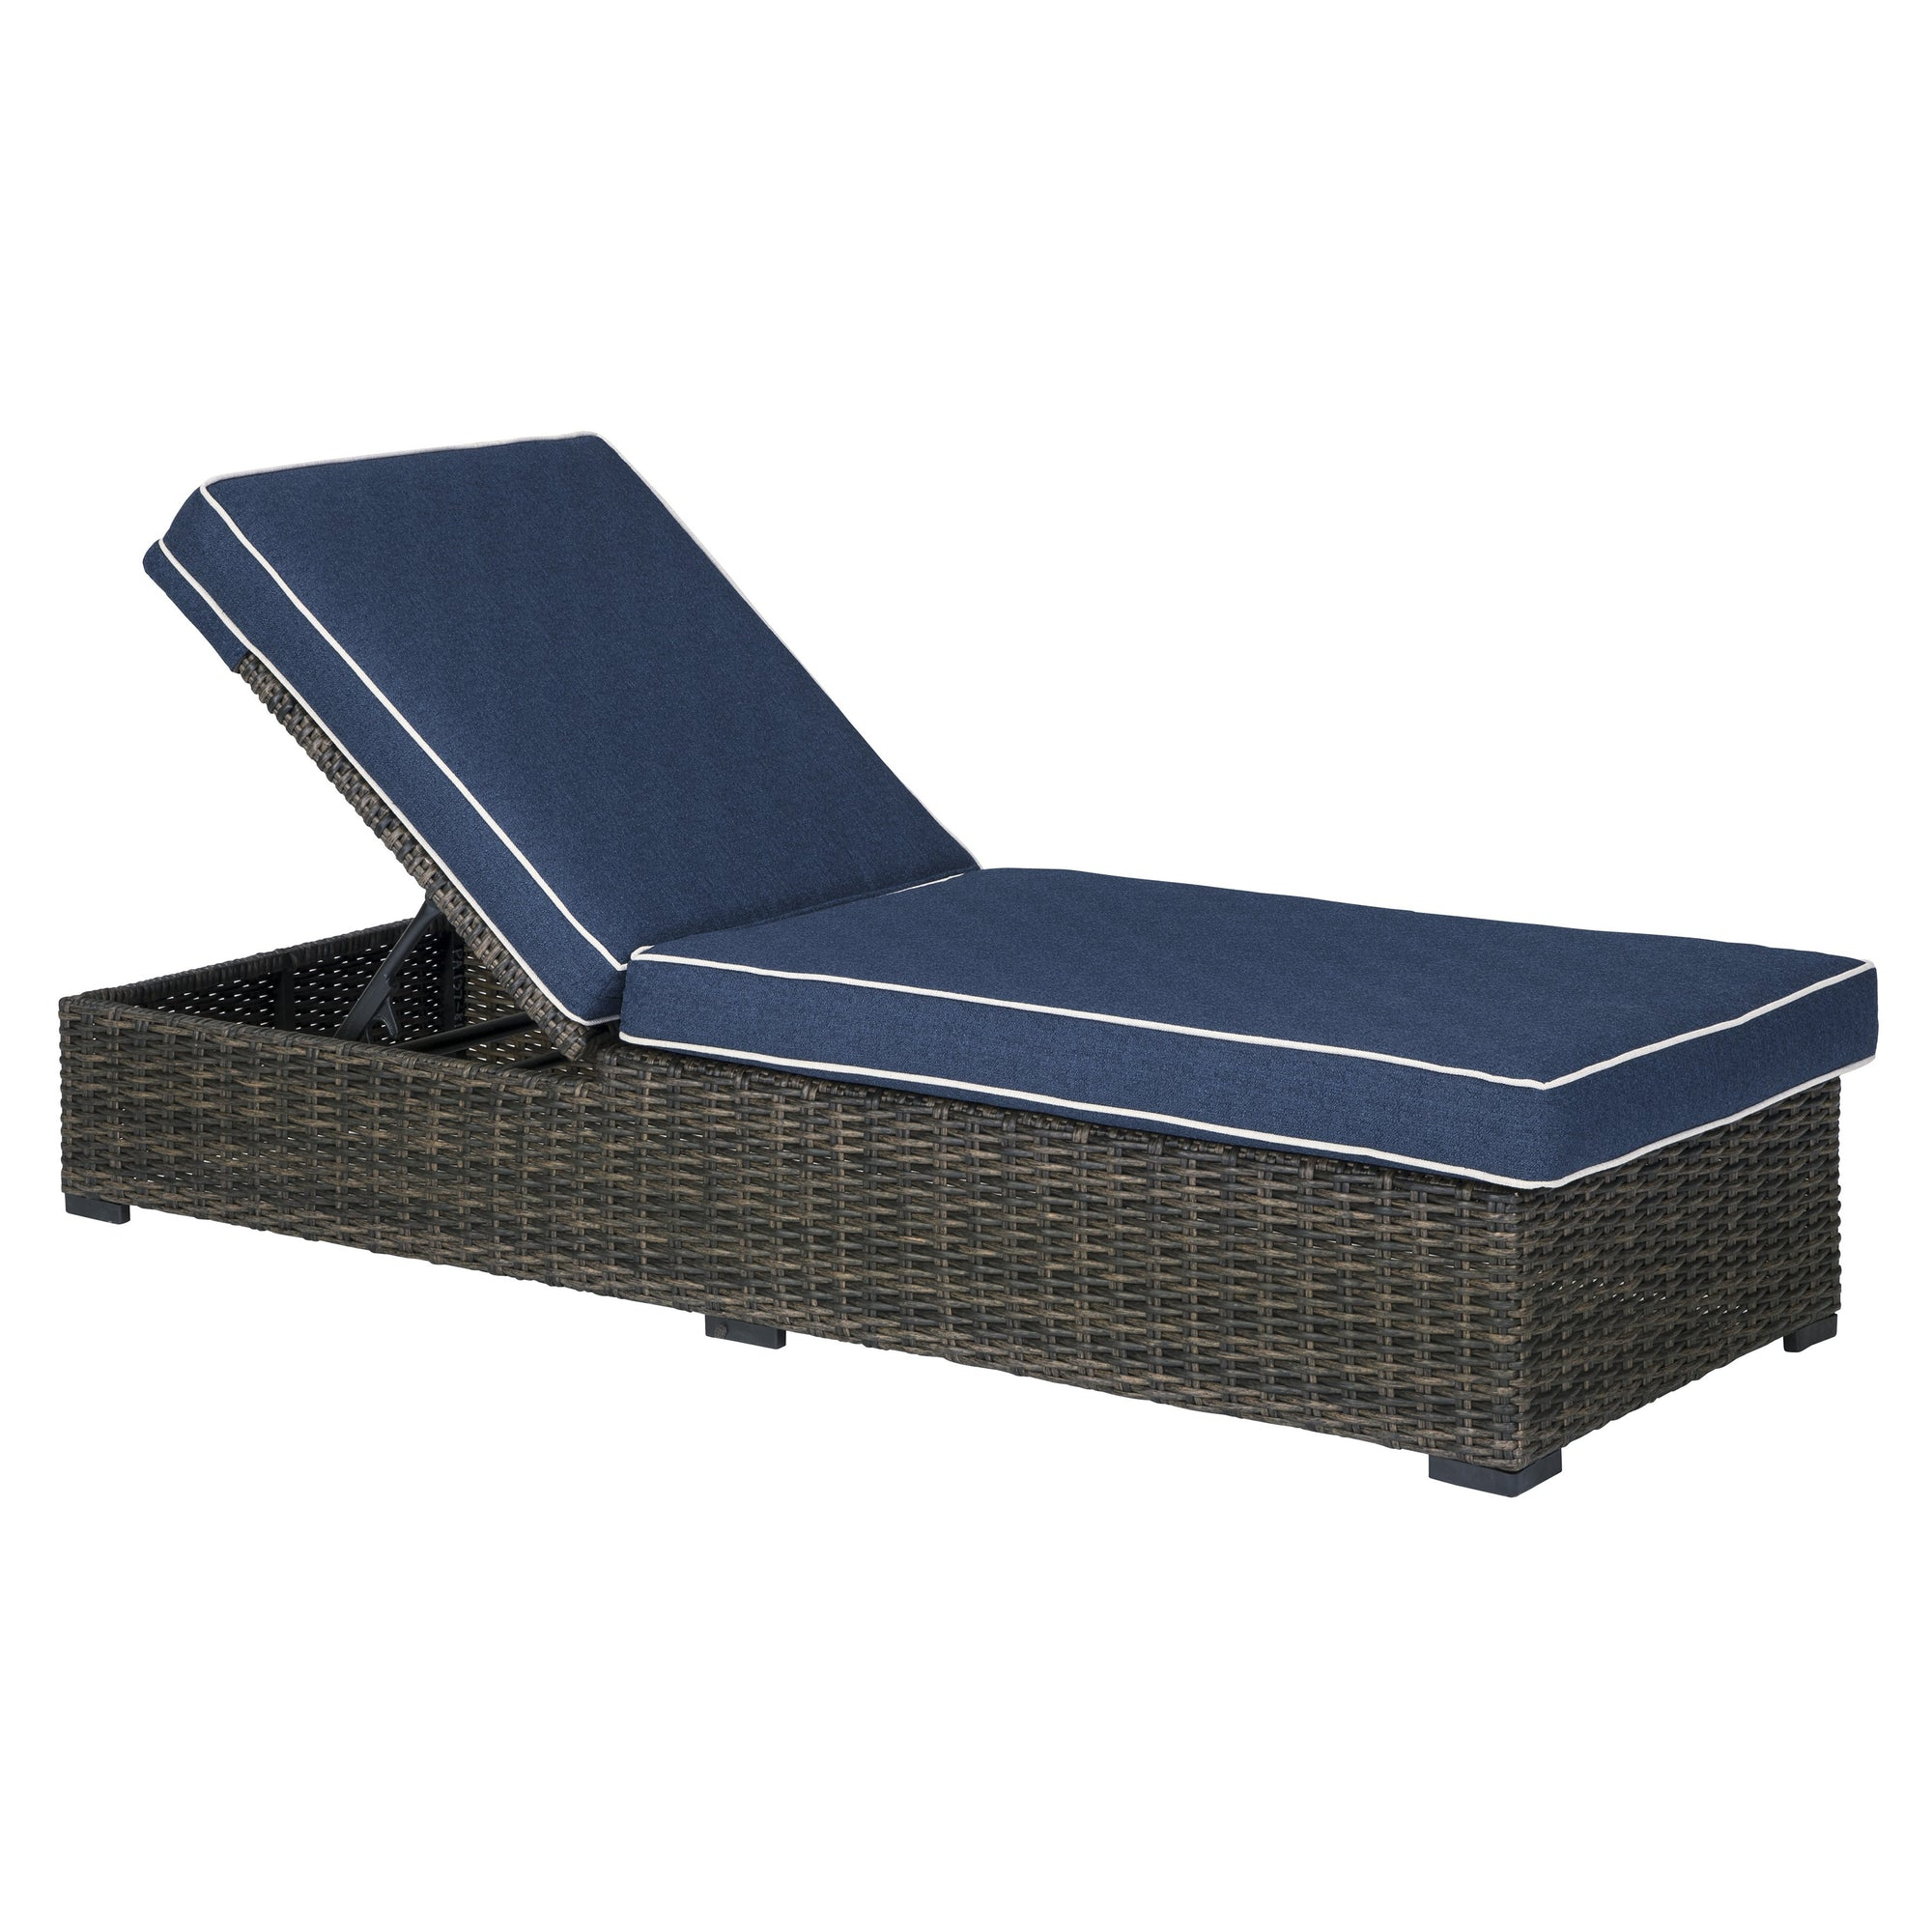 Sag Harbor Outdoor Pool Chaise Lounge